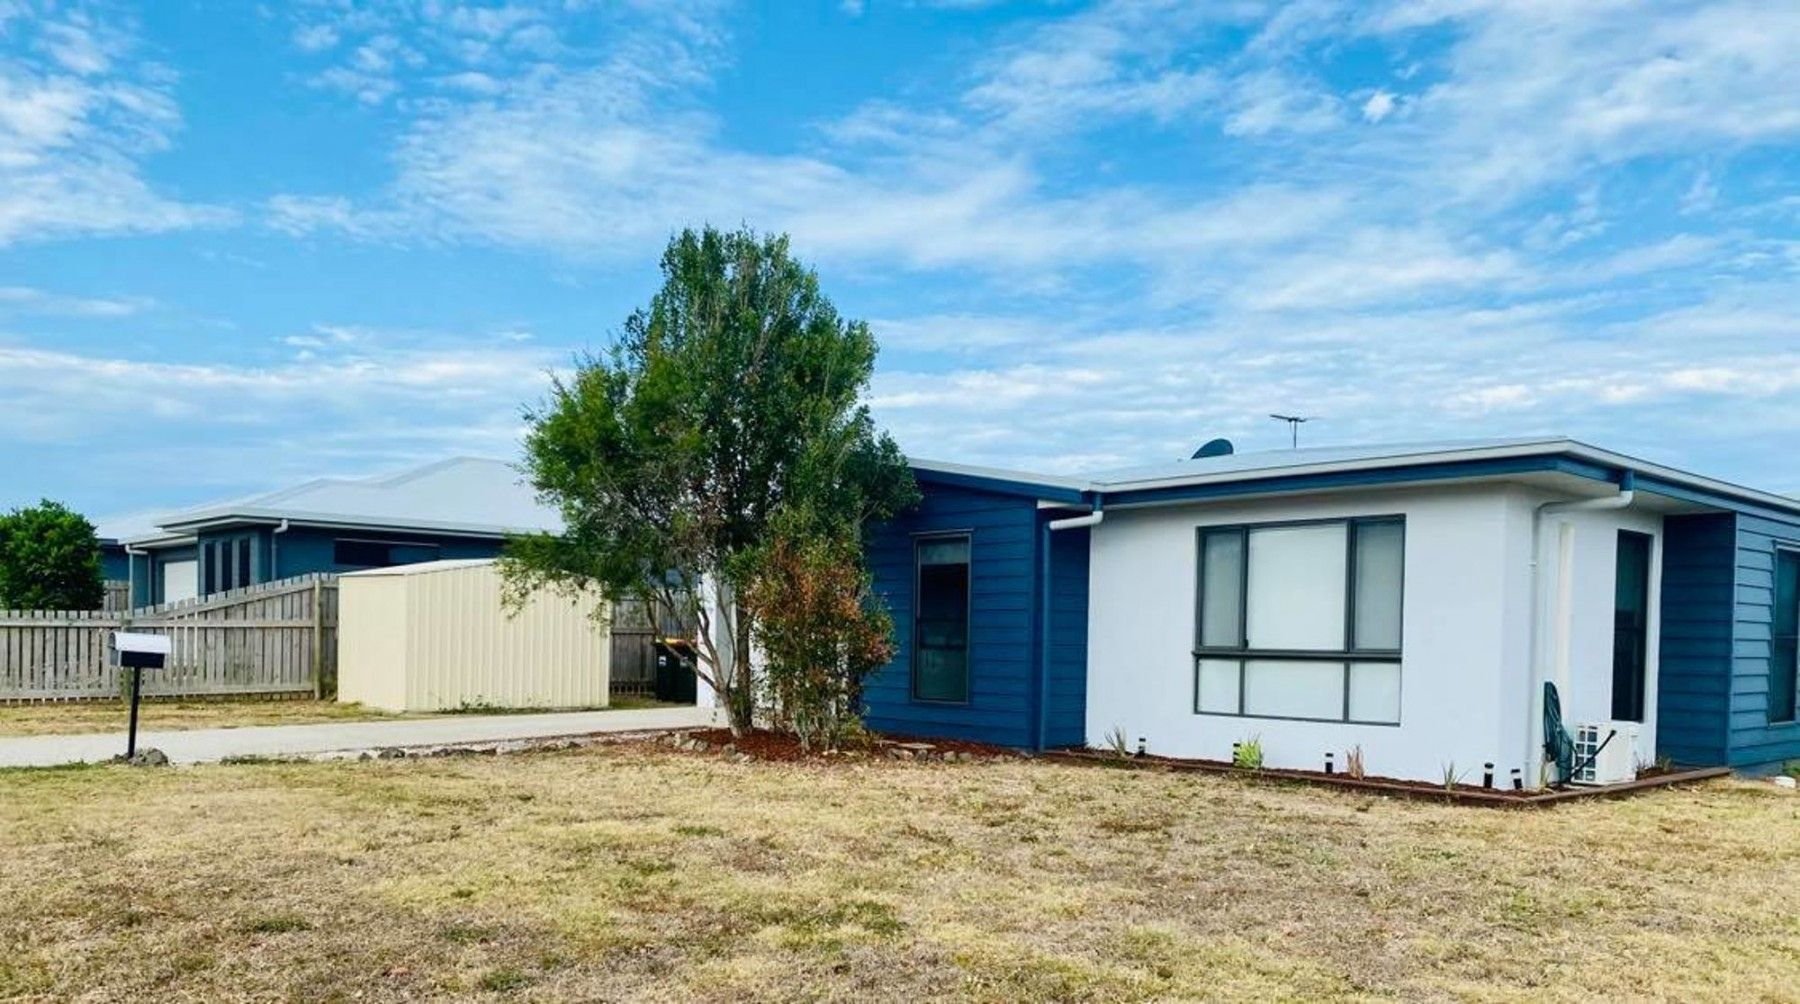 1/20 Amara Street, Rural View QLD 4740, Image 1